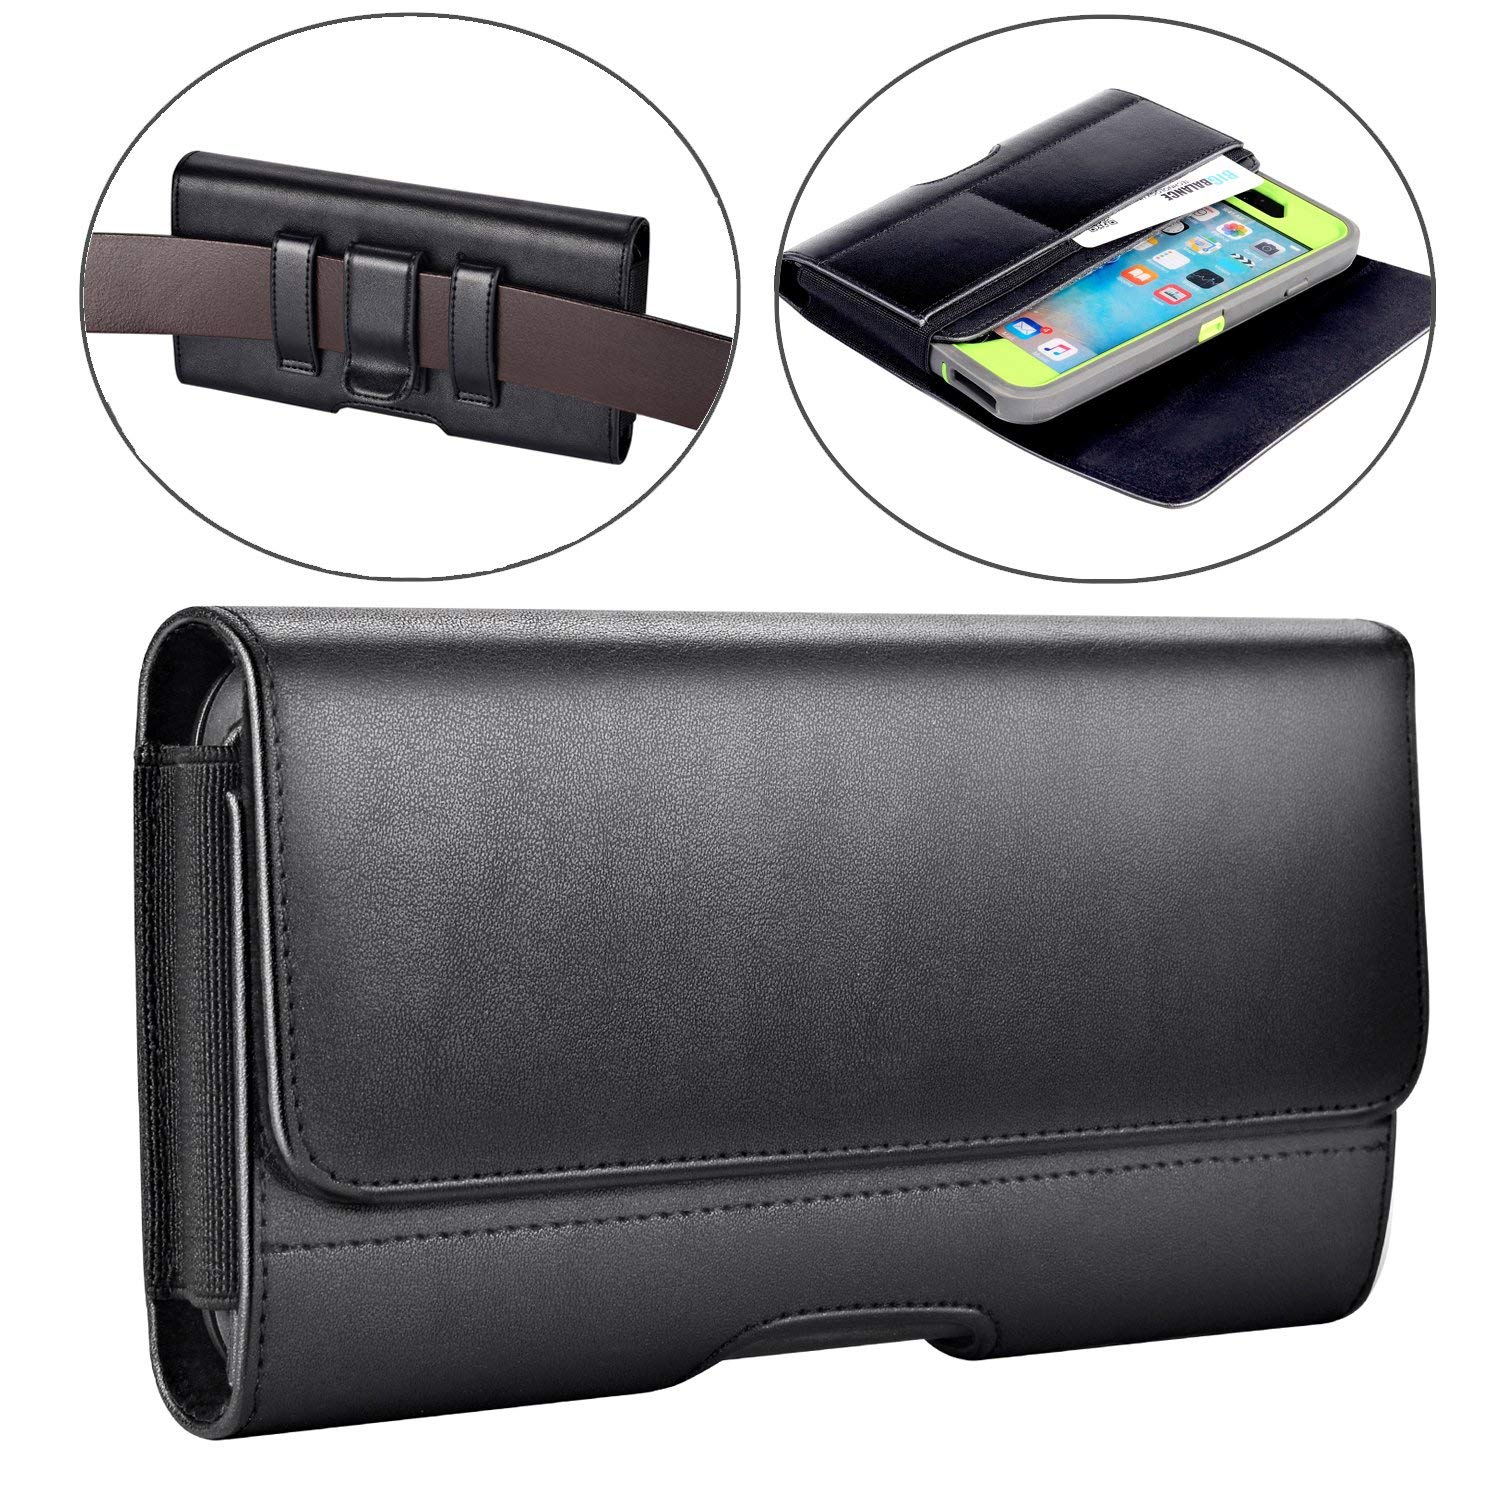 Iphone 8 Plus Holster Iphone 7 Plus Belt Clip Case Leather Holster Pouch Case With Id Card Holder Manufacture Sourcing Agent Services In China